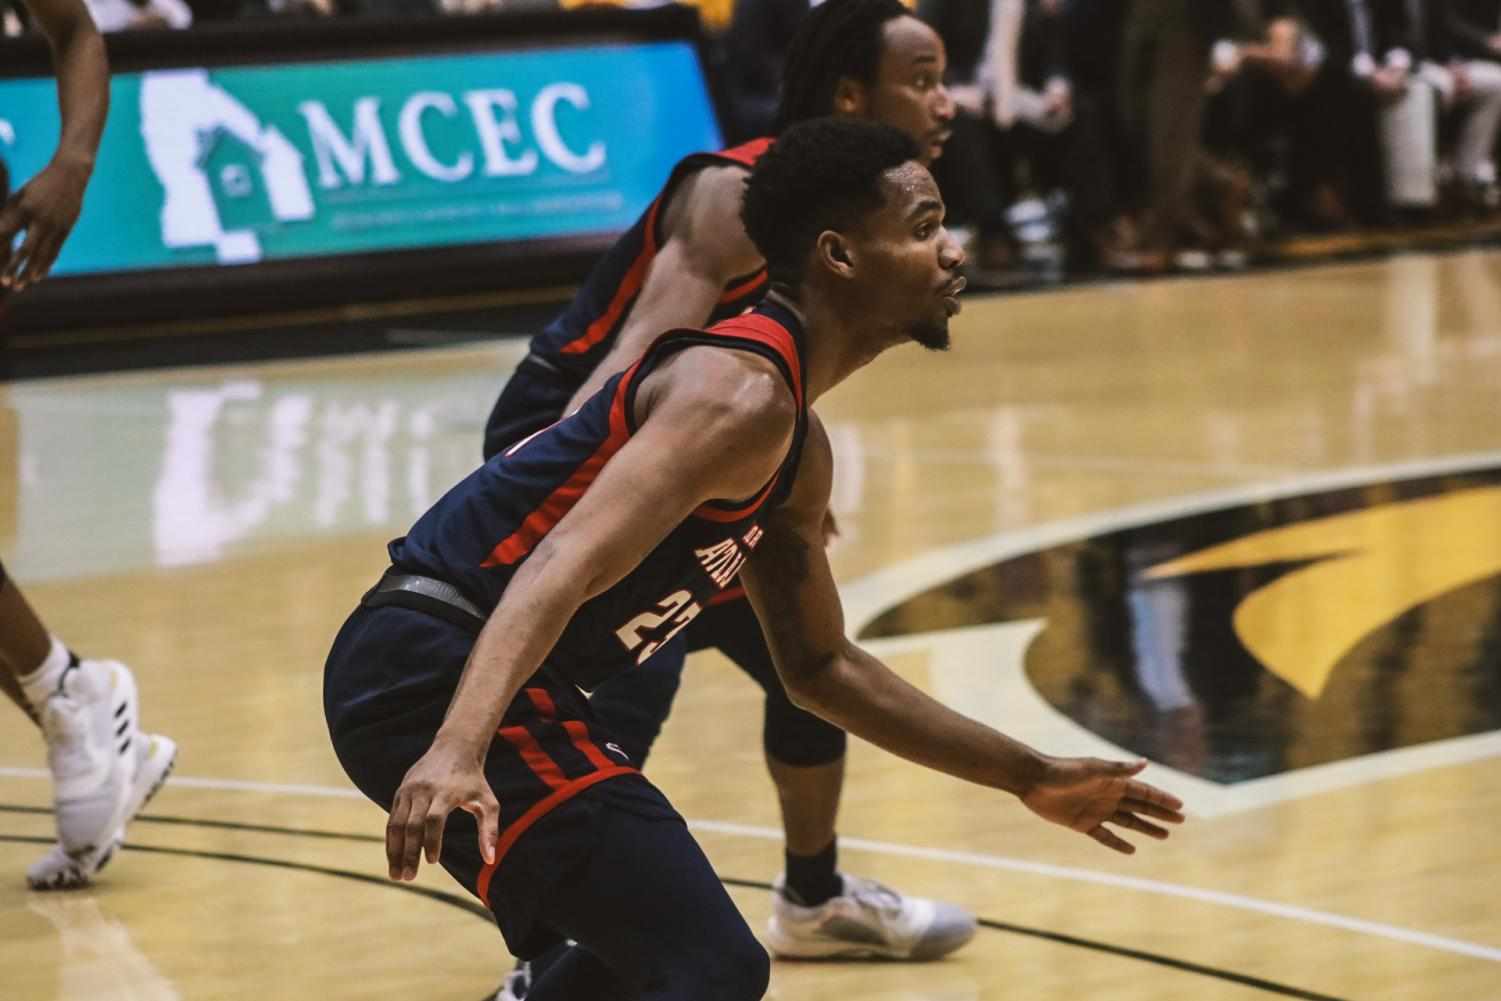 Guard Richardson Maitre scored six points and had five assists in the loss against Southern Miss. Photo courtesy of USM Athletics.